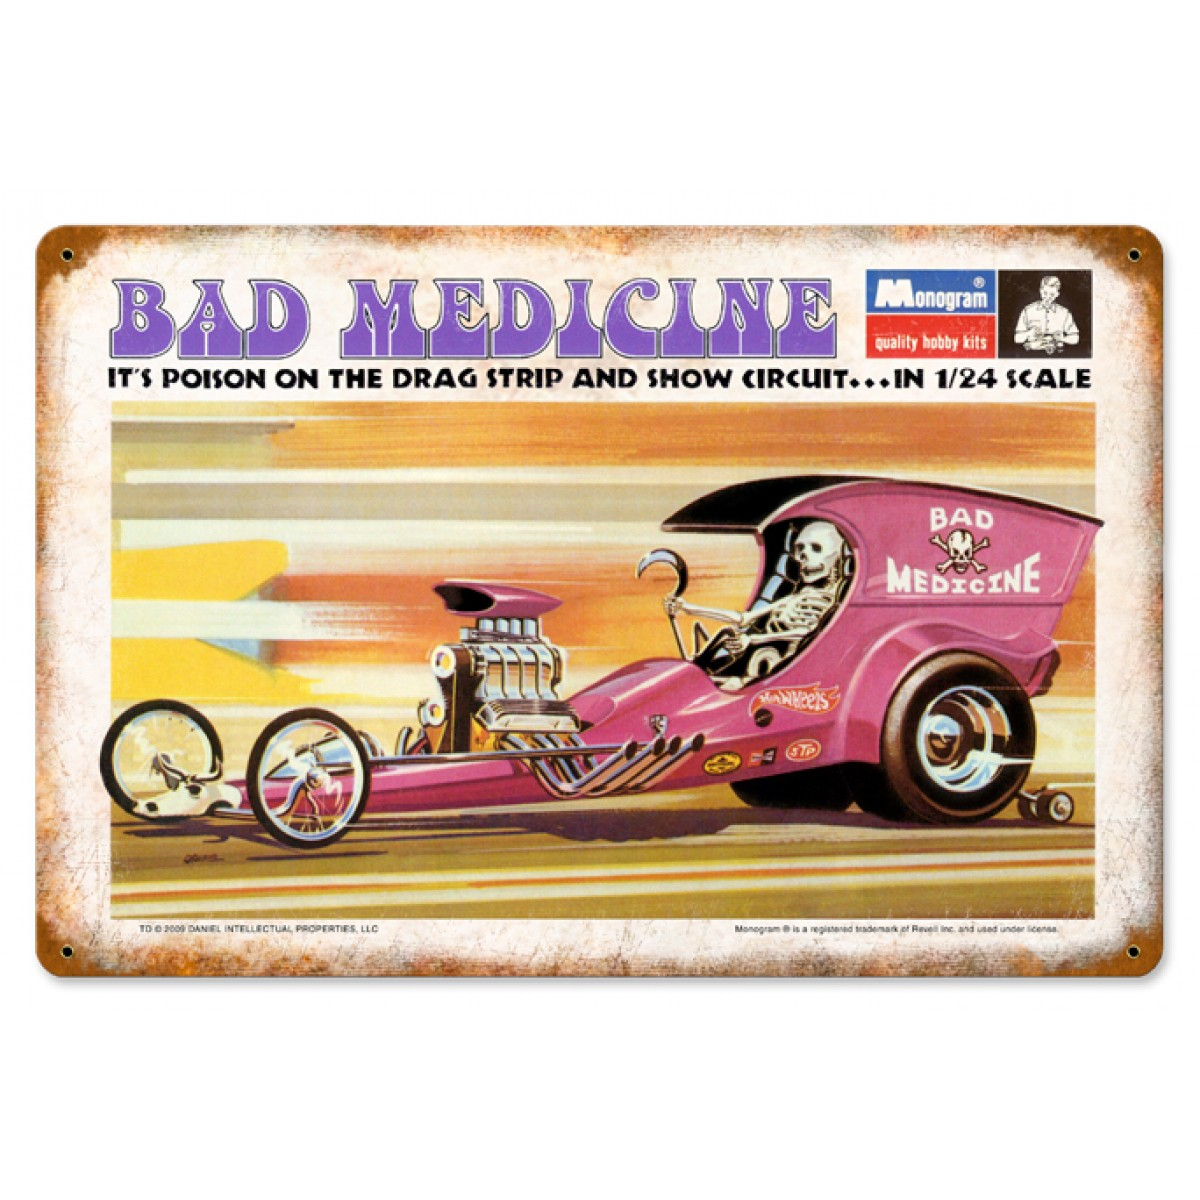 Bad Shop 24 Hossrods Bad Medicine Low Riders Shop By Car Model Hot